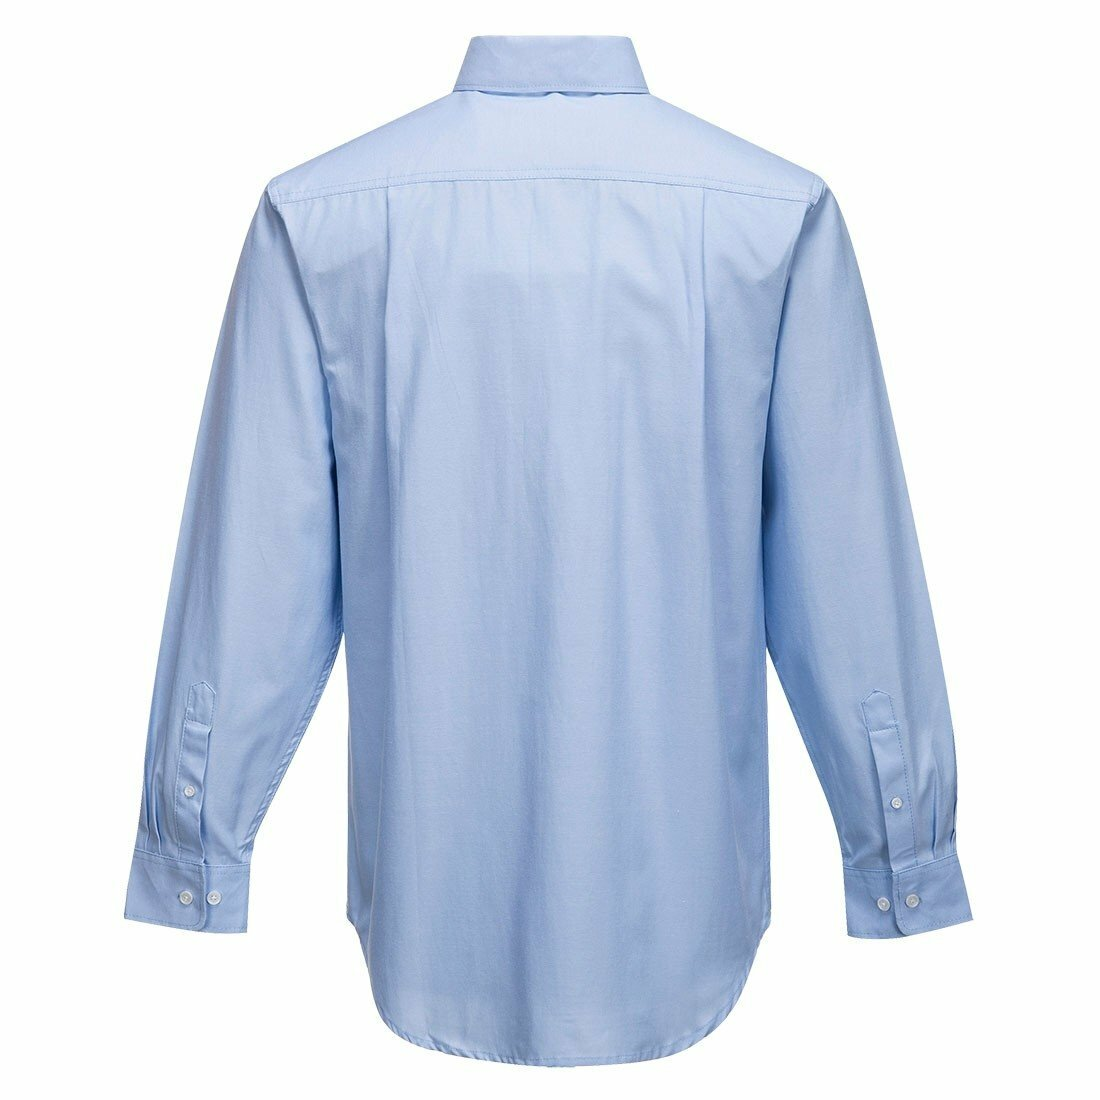 MS868 Sydney Shirt, Long Sleeve, Light Weight